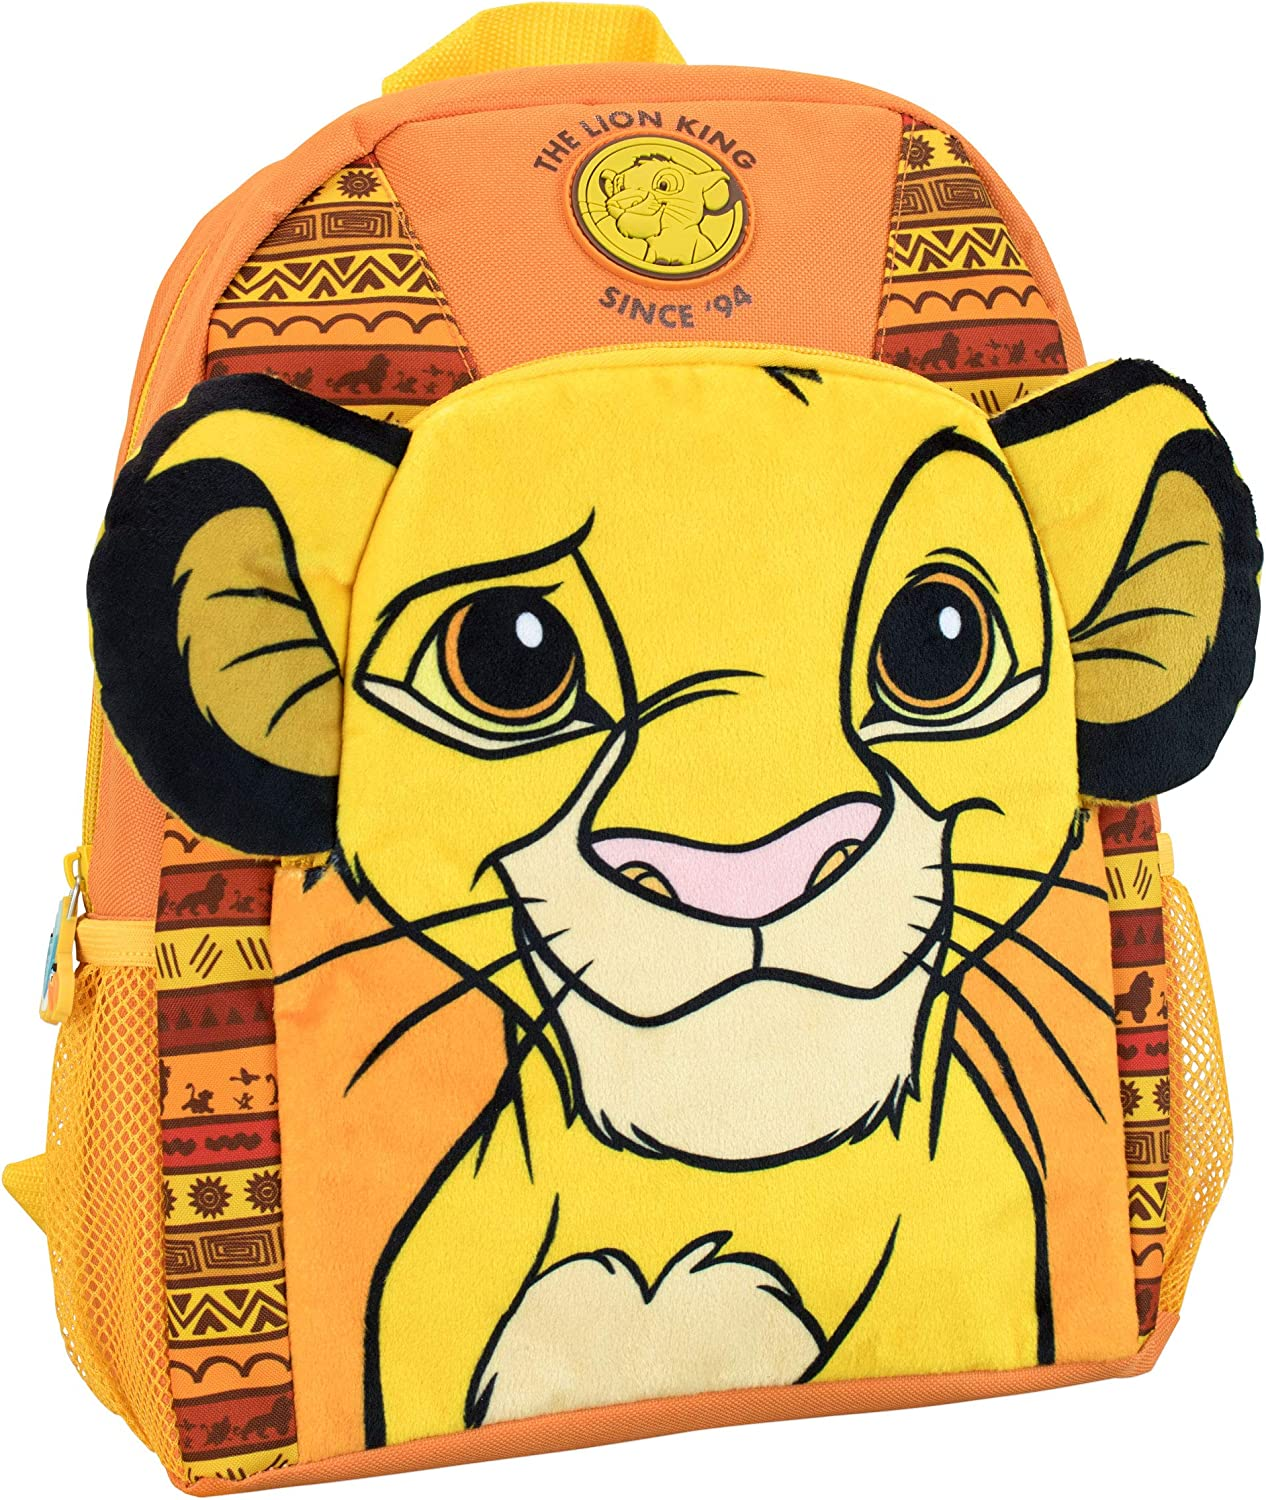 Student Backpack or Adults Stylish Bookbag or Lunch Backpack for Children Unisex Campus Backpack with Padded Shoulder Straps Golden Cool Lion King Backpack Teens